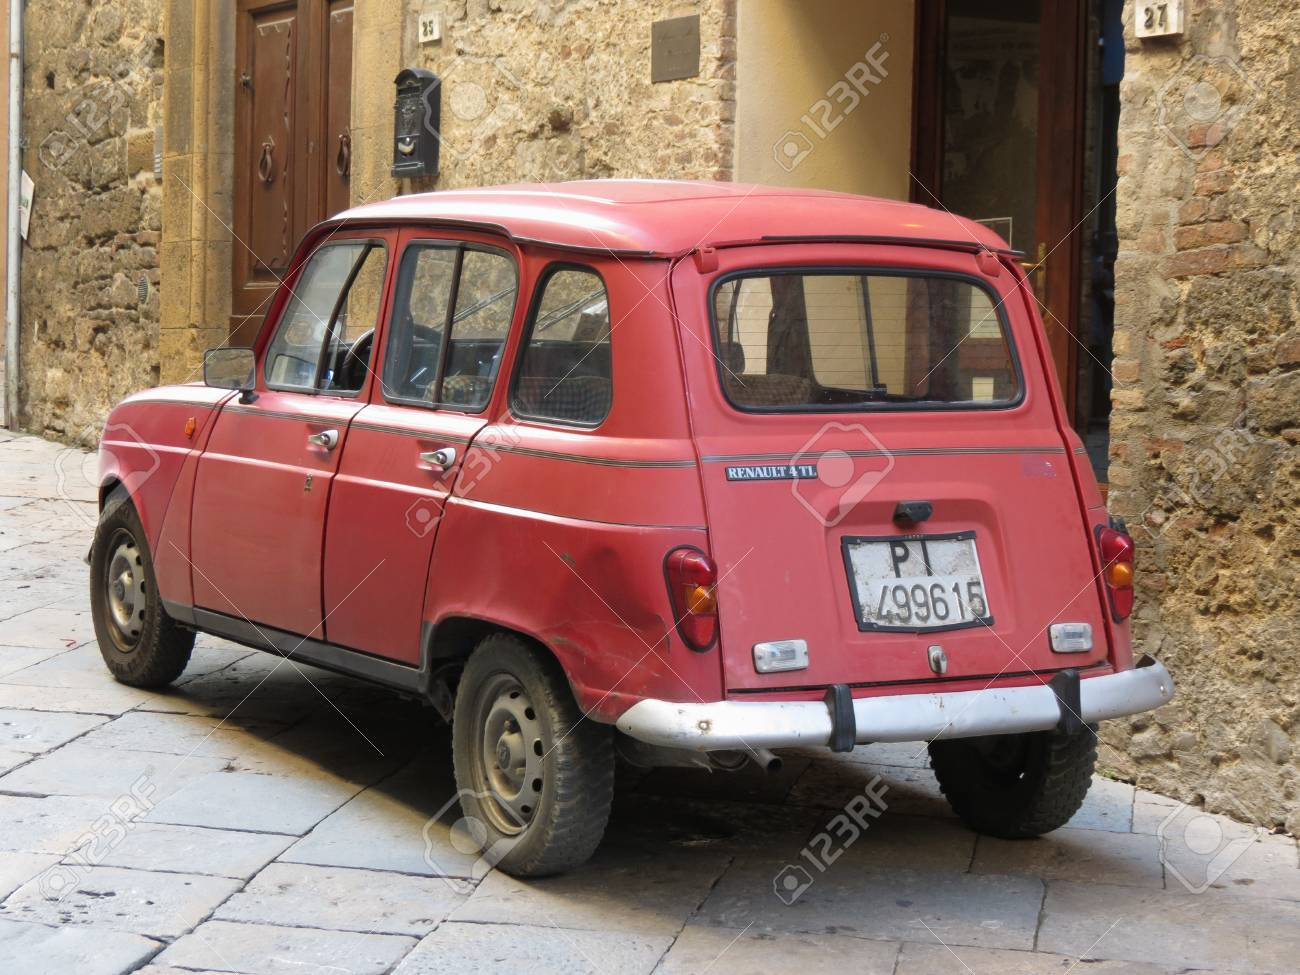 Volterra Italy Circa December 2014 A Red Renault 4 Parked Stock Photo Picture And Royalty Free Image Image 116750195